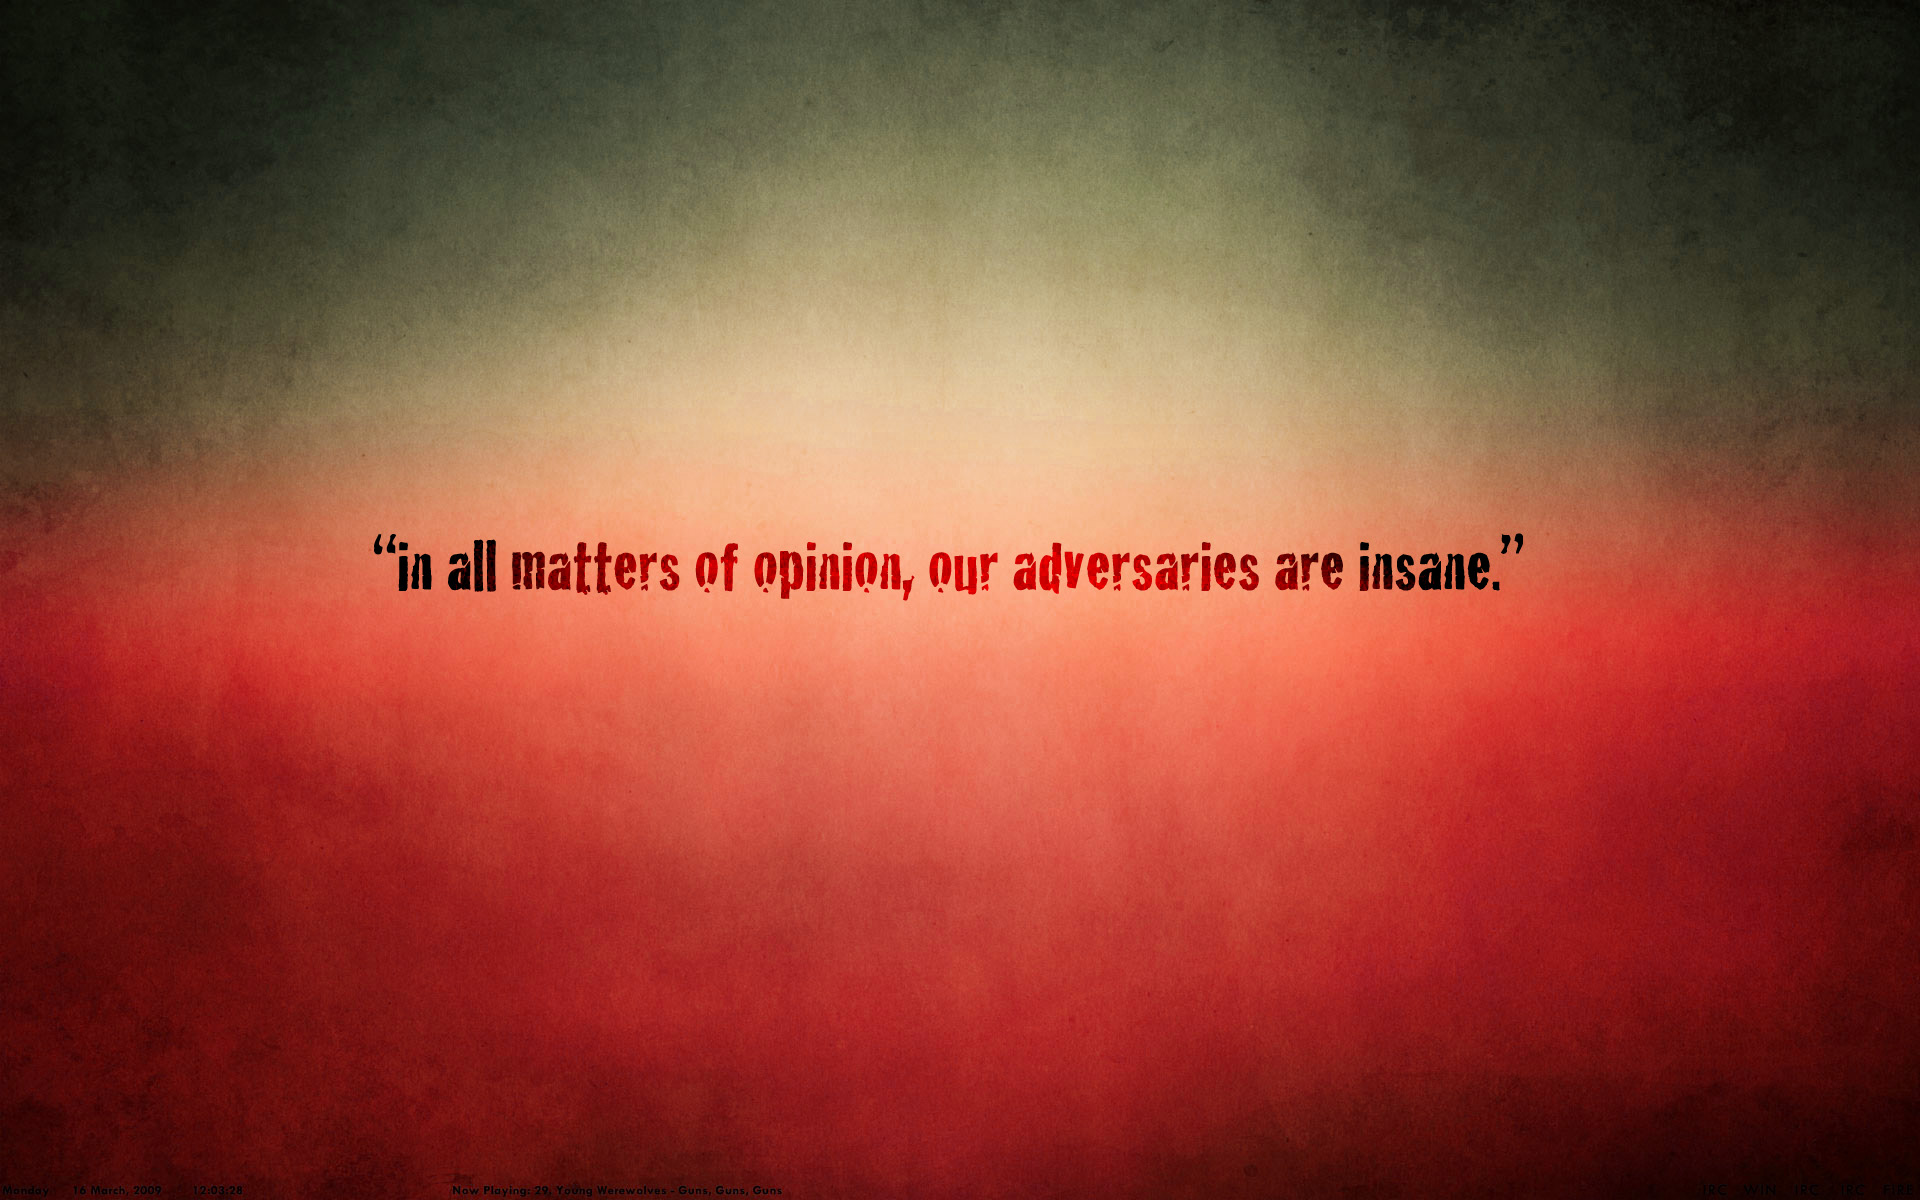 Quotes Gradient Wallpaper 1920x1200 Quotes Gradient 1920x1200